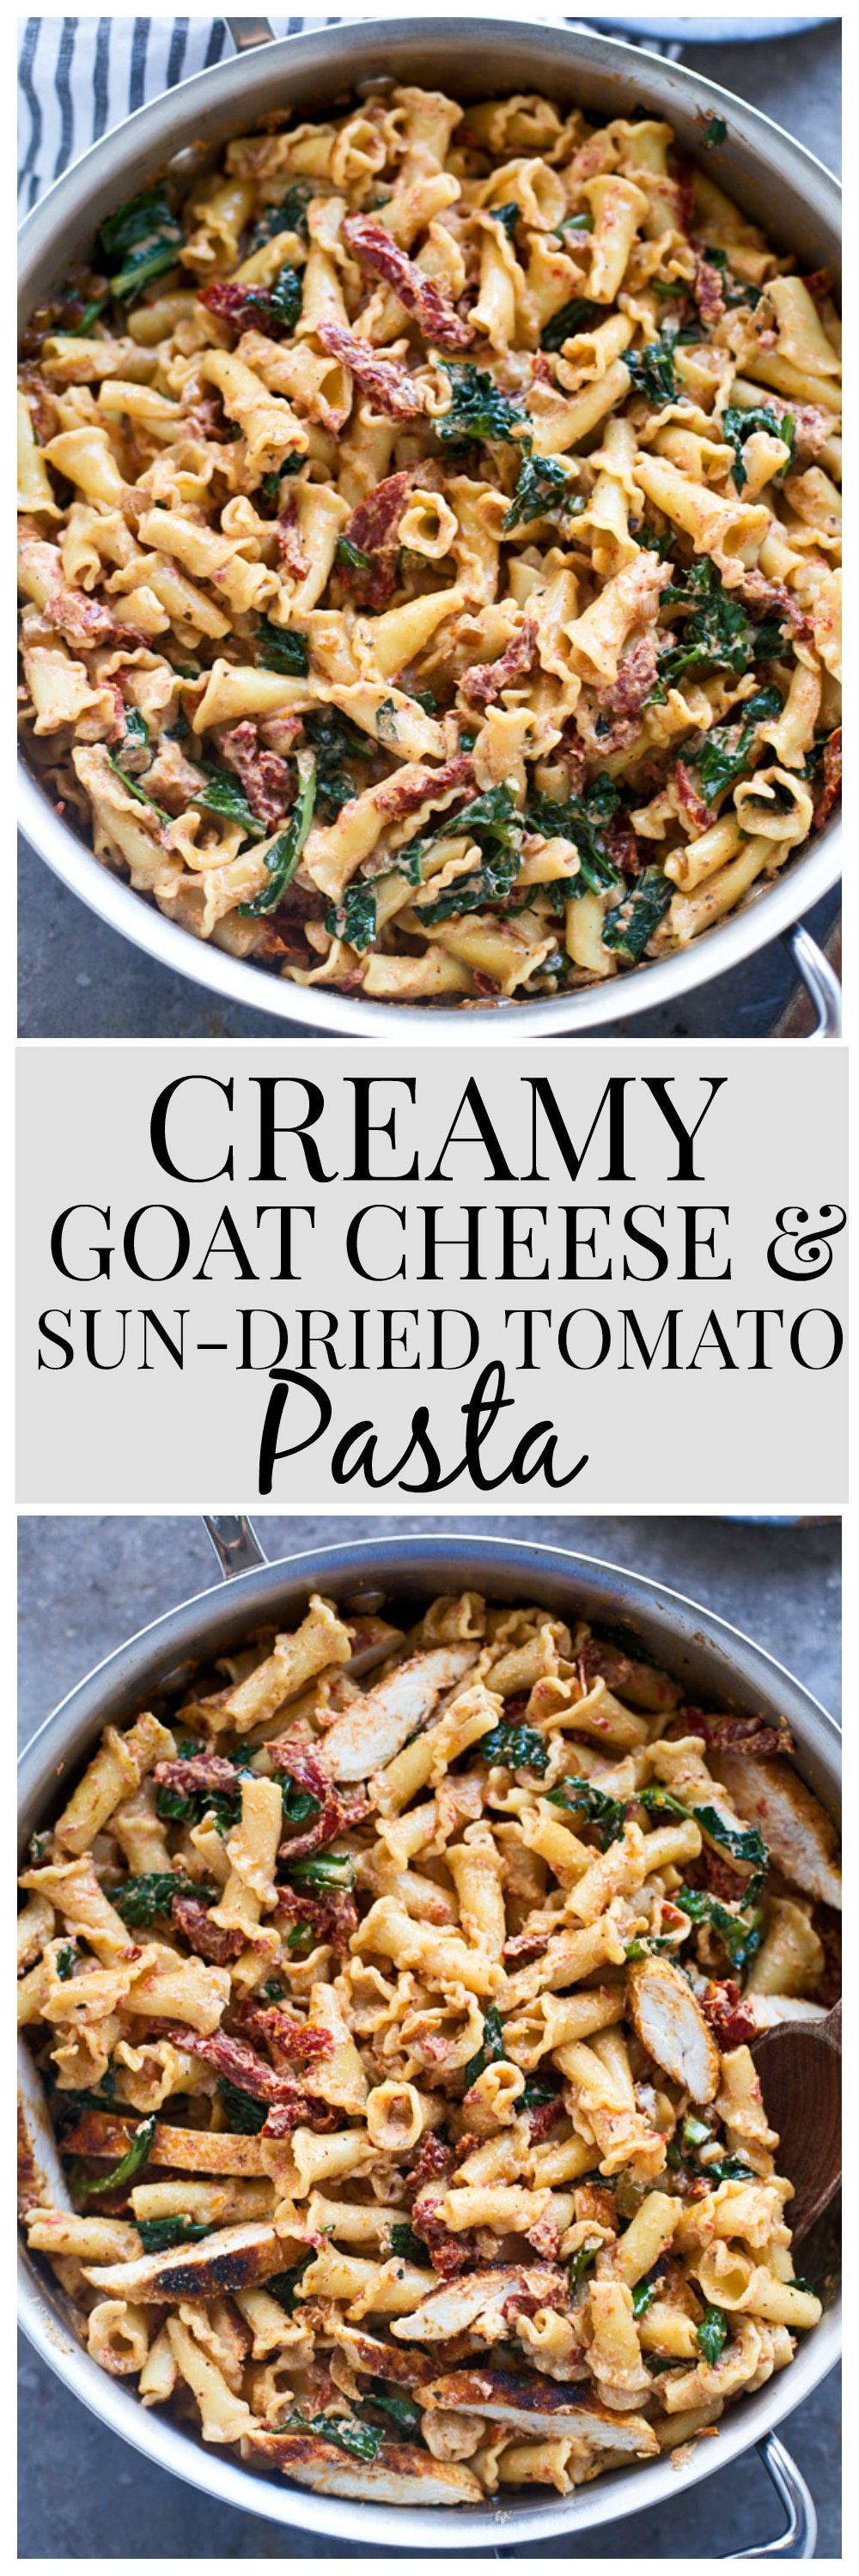 Creamy Goat Cheese and Sun-Dried Tomato Pasta - Cooking for Keeps